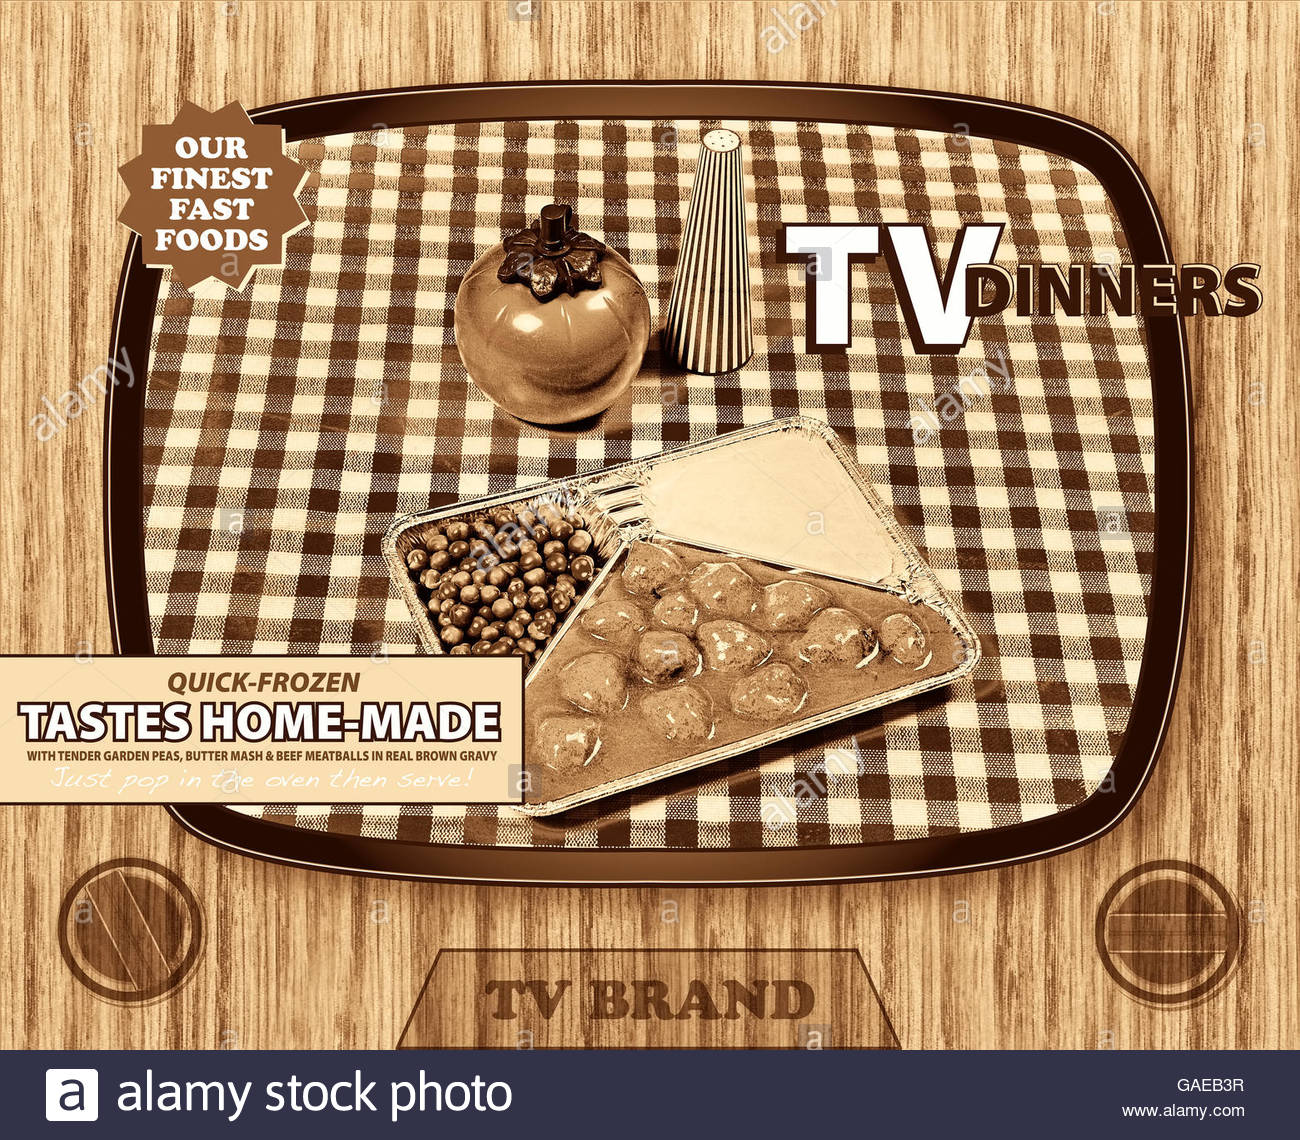 TV dinner tray vintage retro meal aluminum food dish packaging style Stock Photo